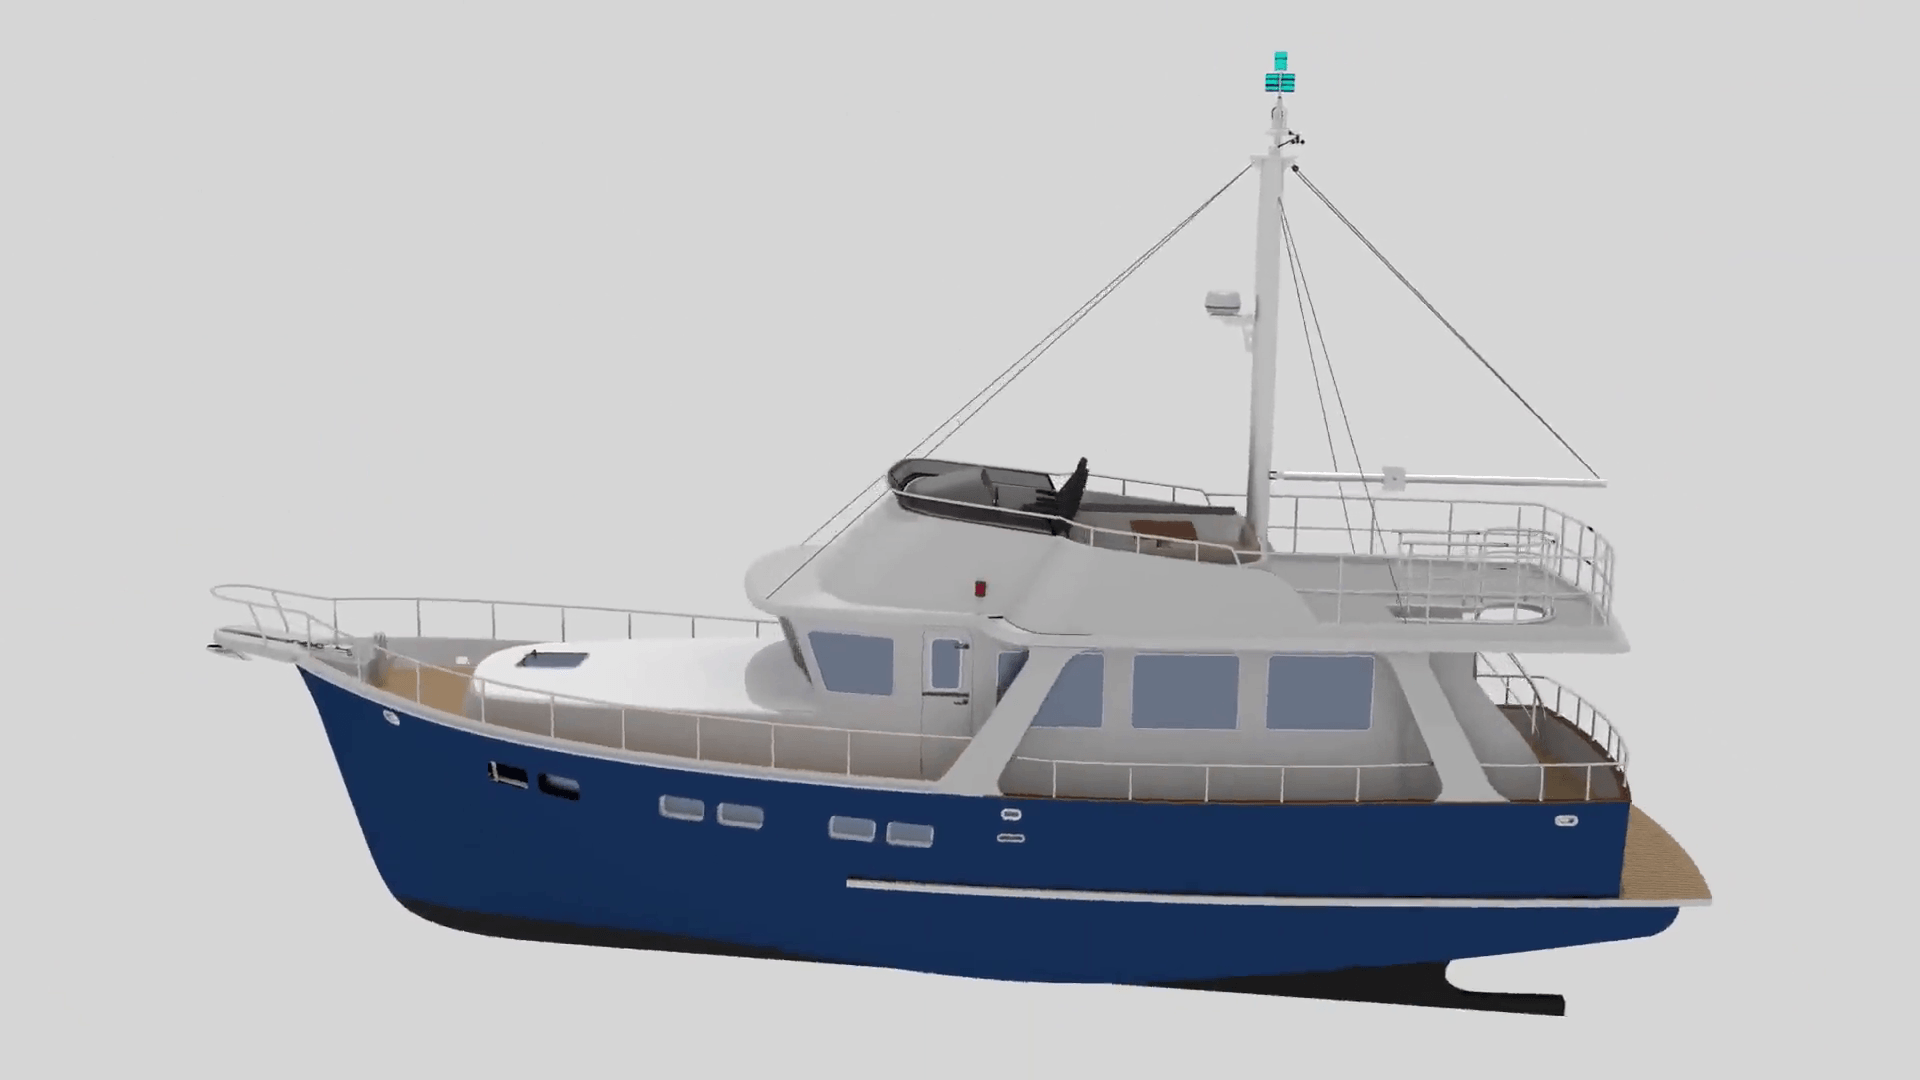 Selene Ocean Yachts, Trawlers - Inspired Dream Builders